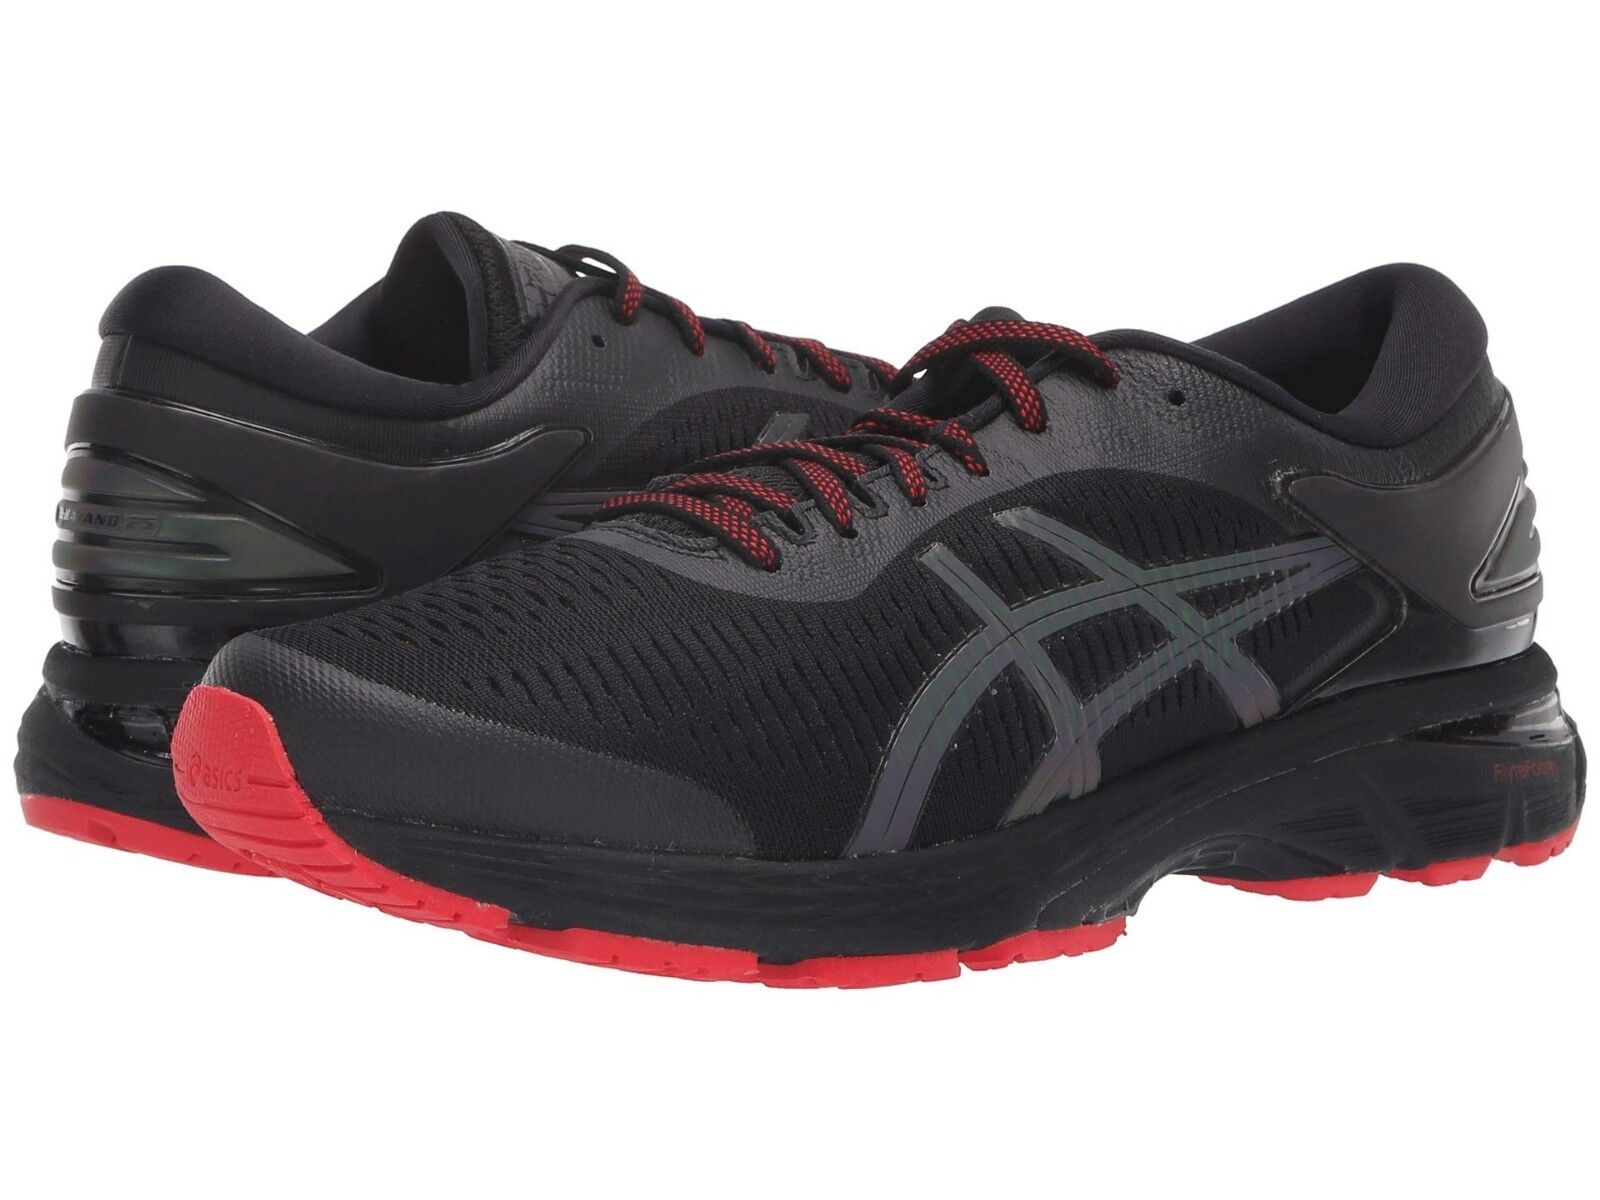 Nib Neuf pour Homme Asics Gel Kayano 25 Lite-Show Running-shoes 1011A022.001